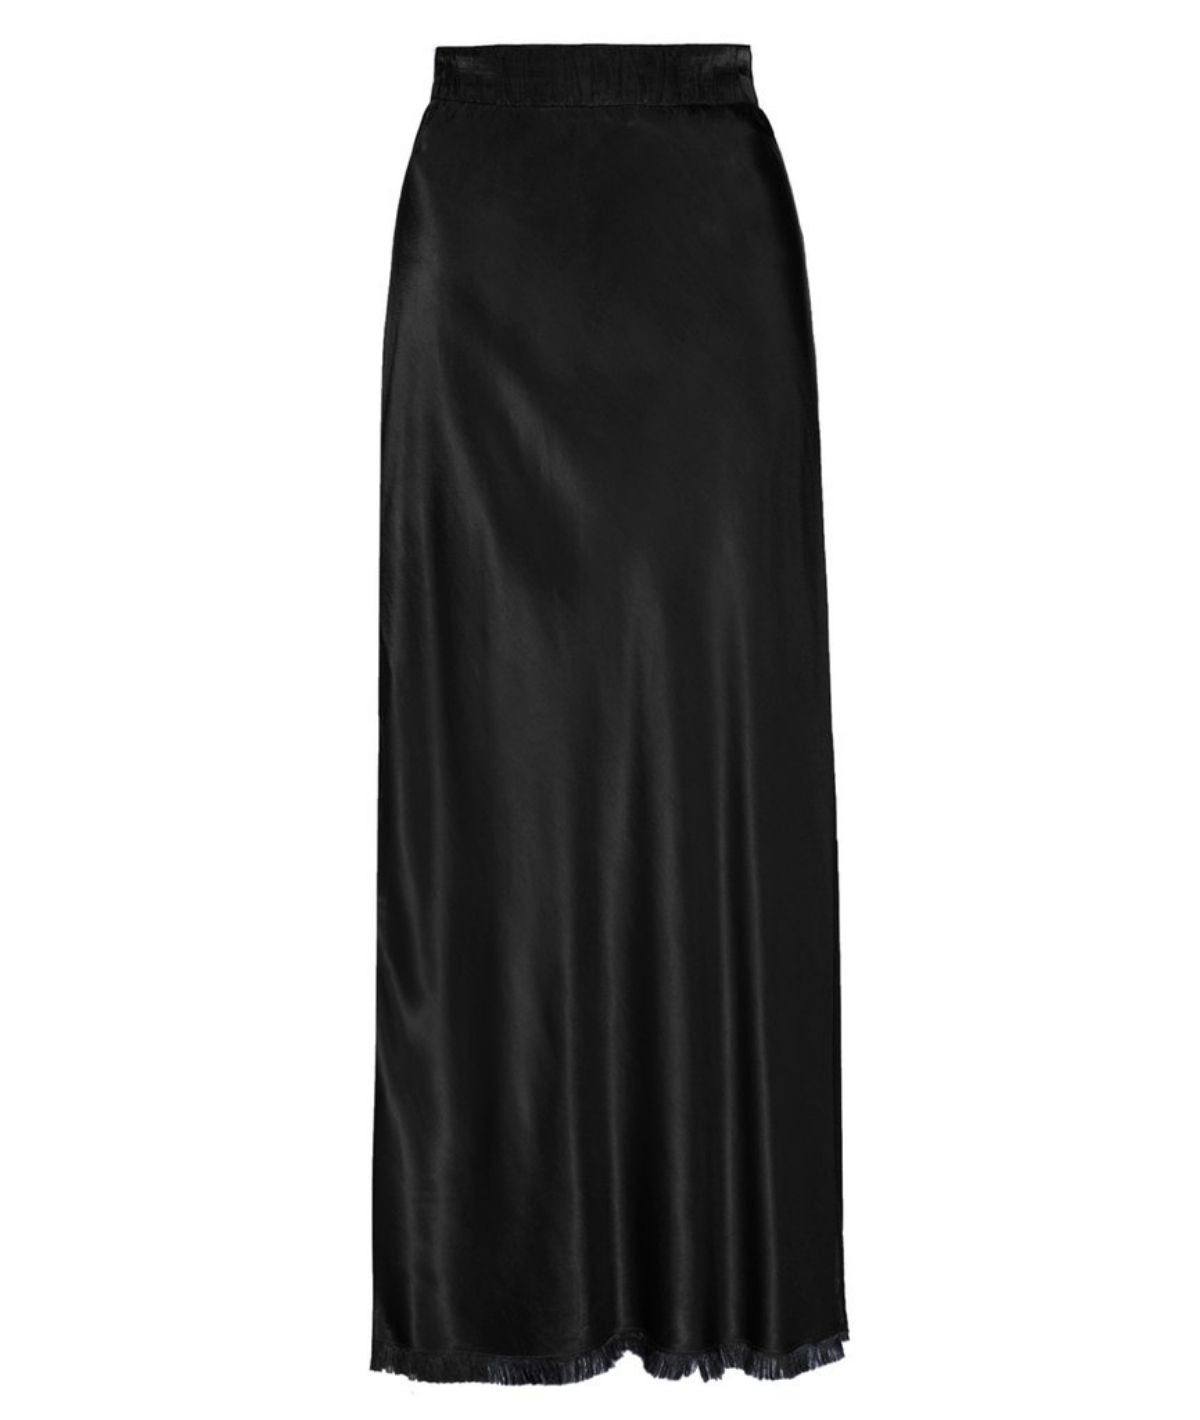 Maribel Bias Skirt w/ Slit - Black